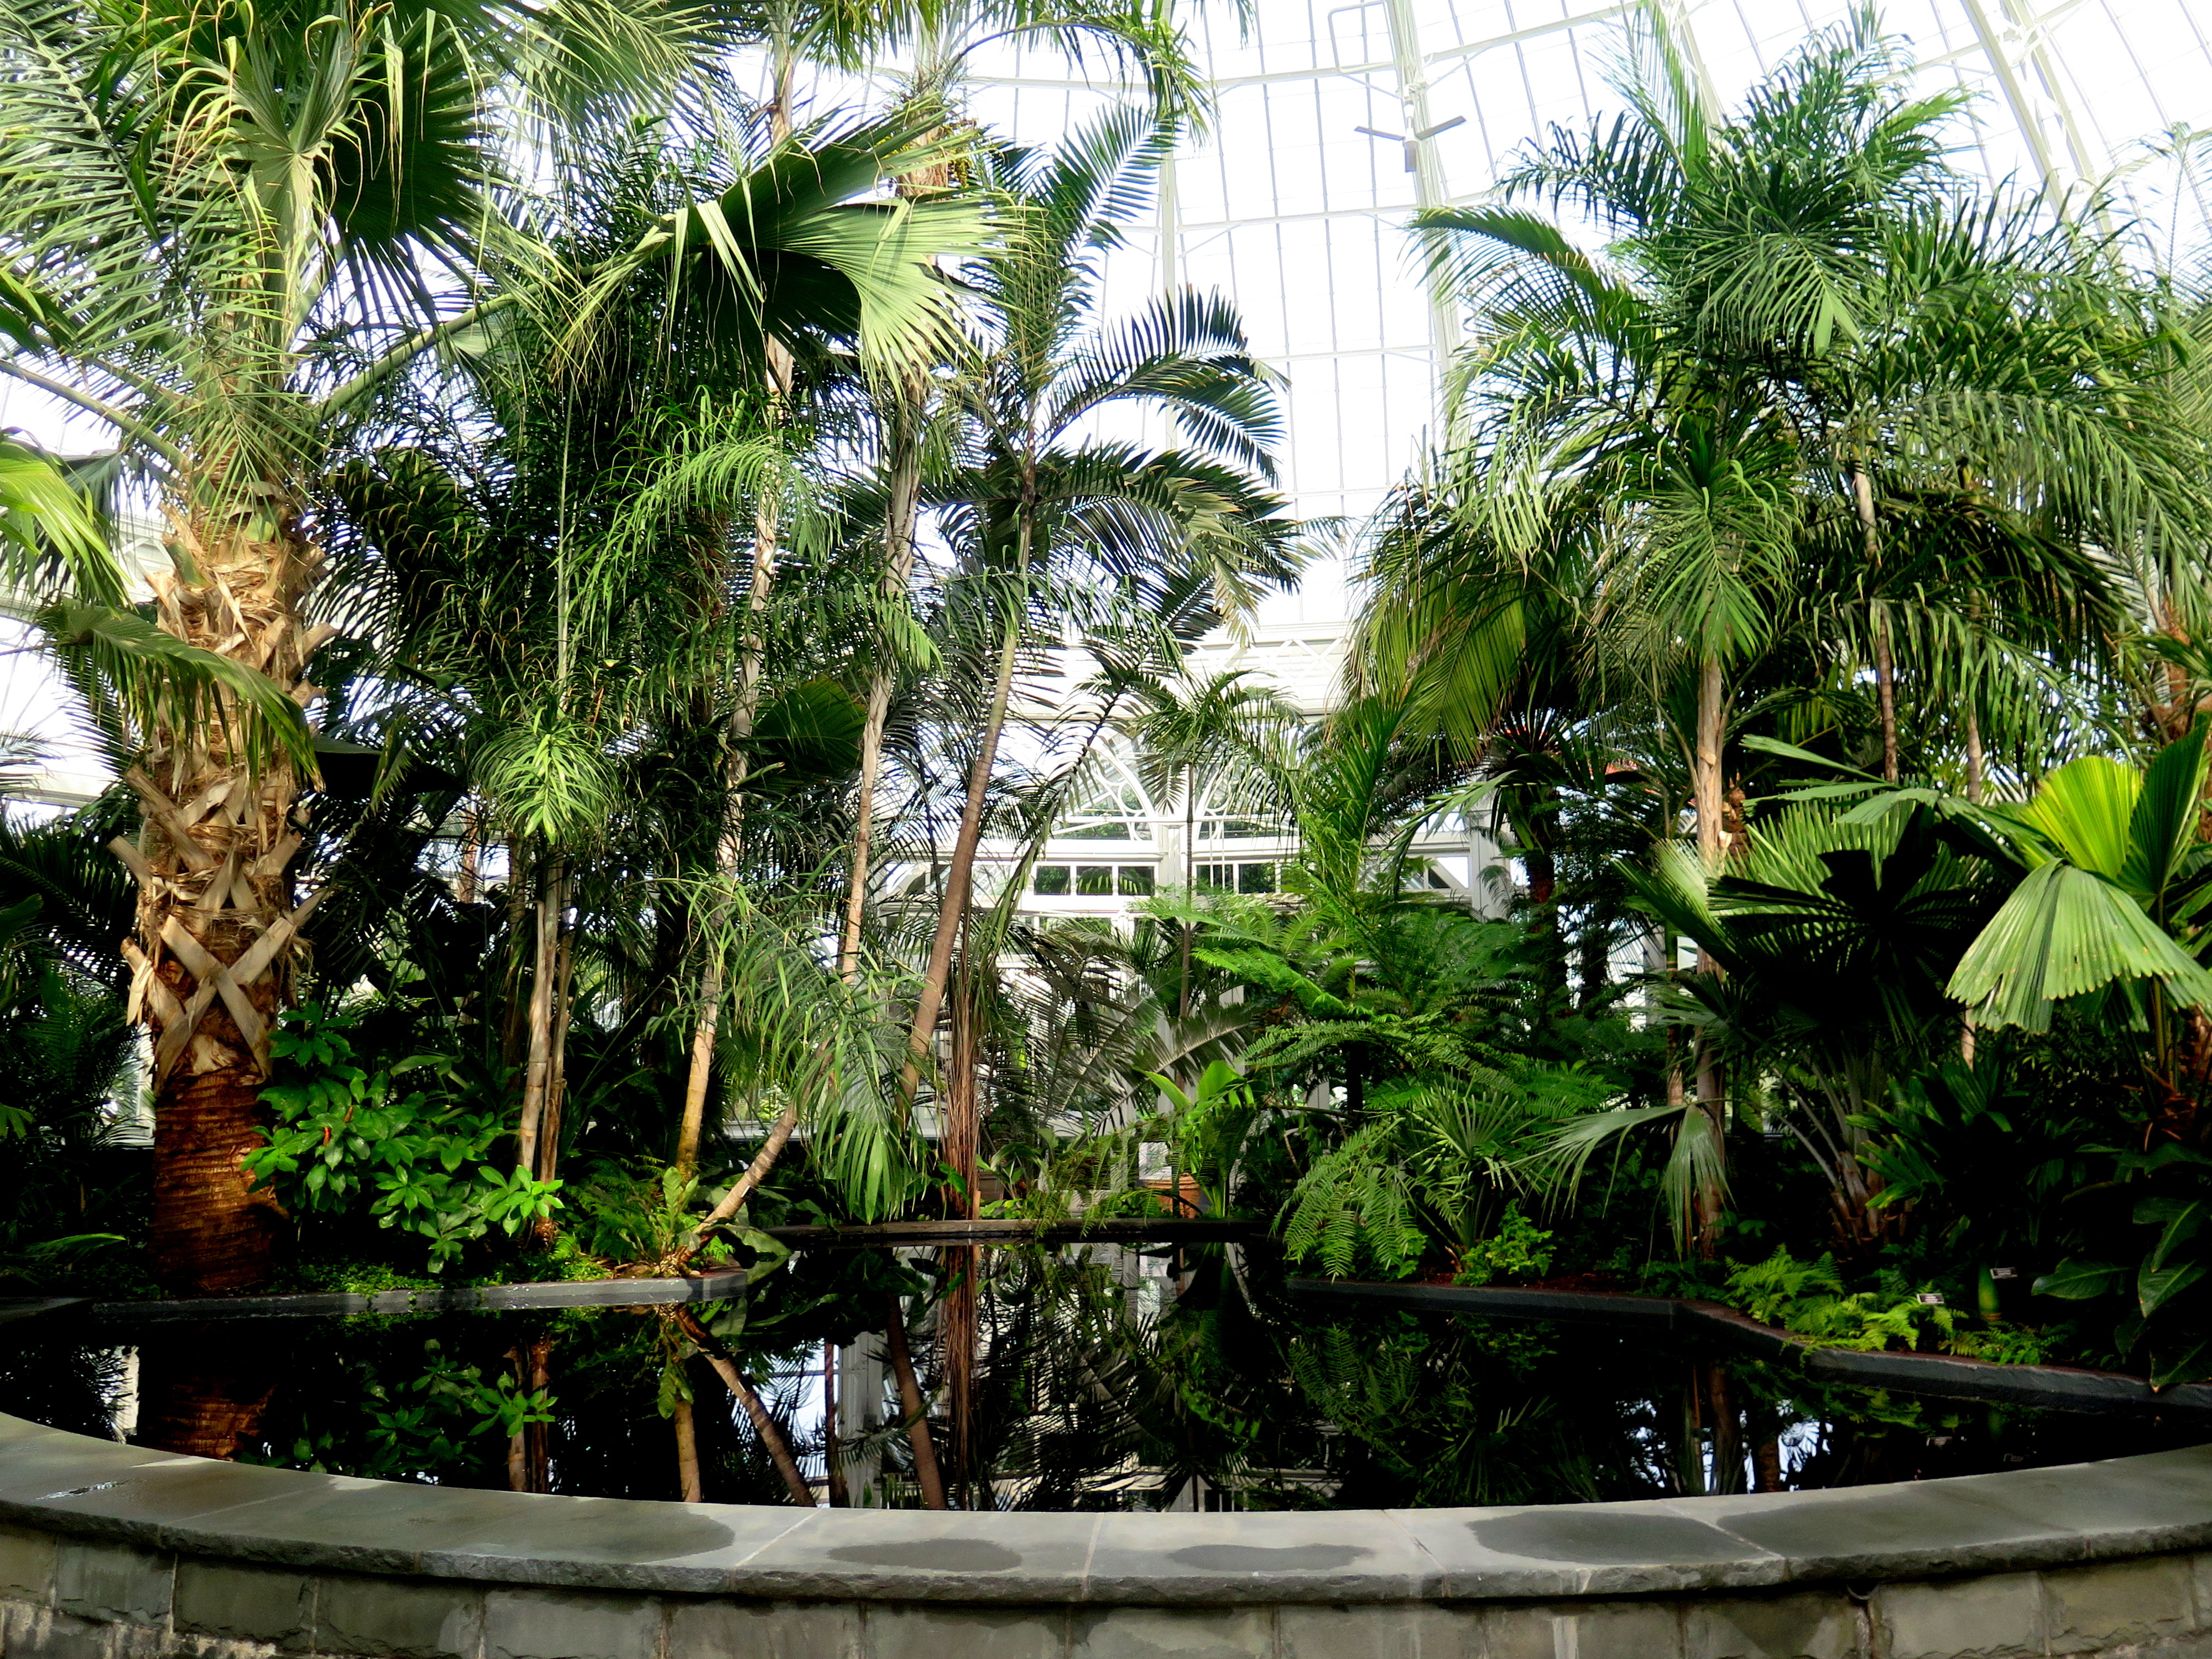 NYBG, Enid A. Haupt Conservatory